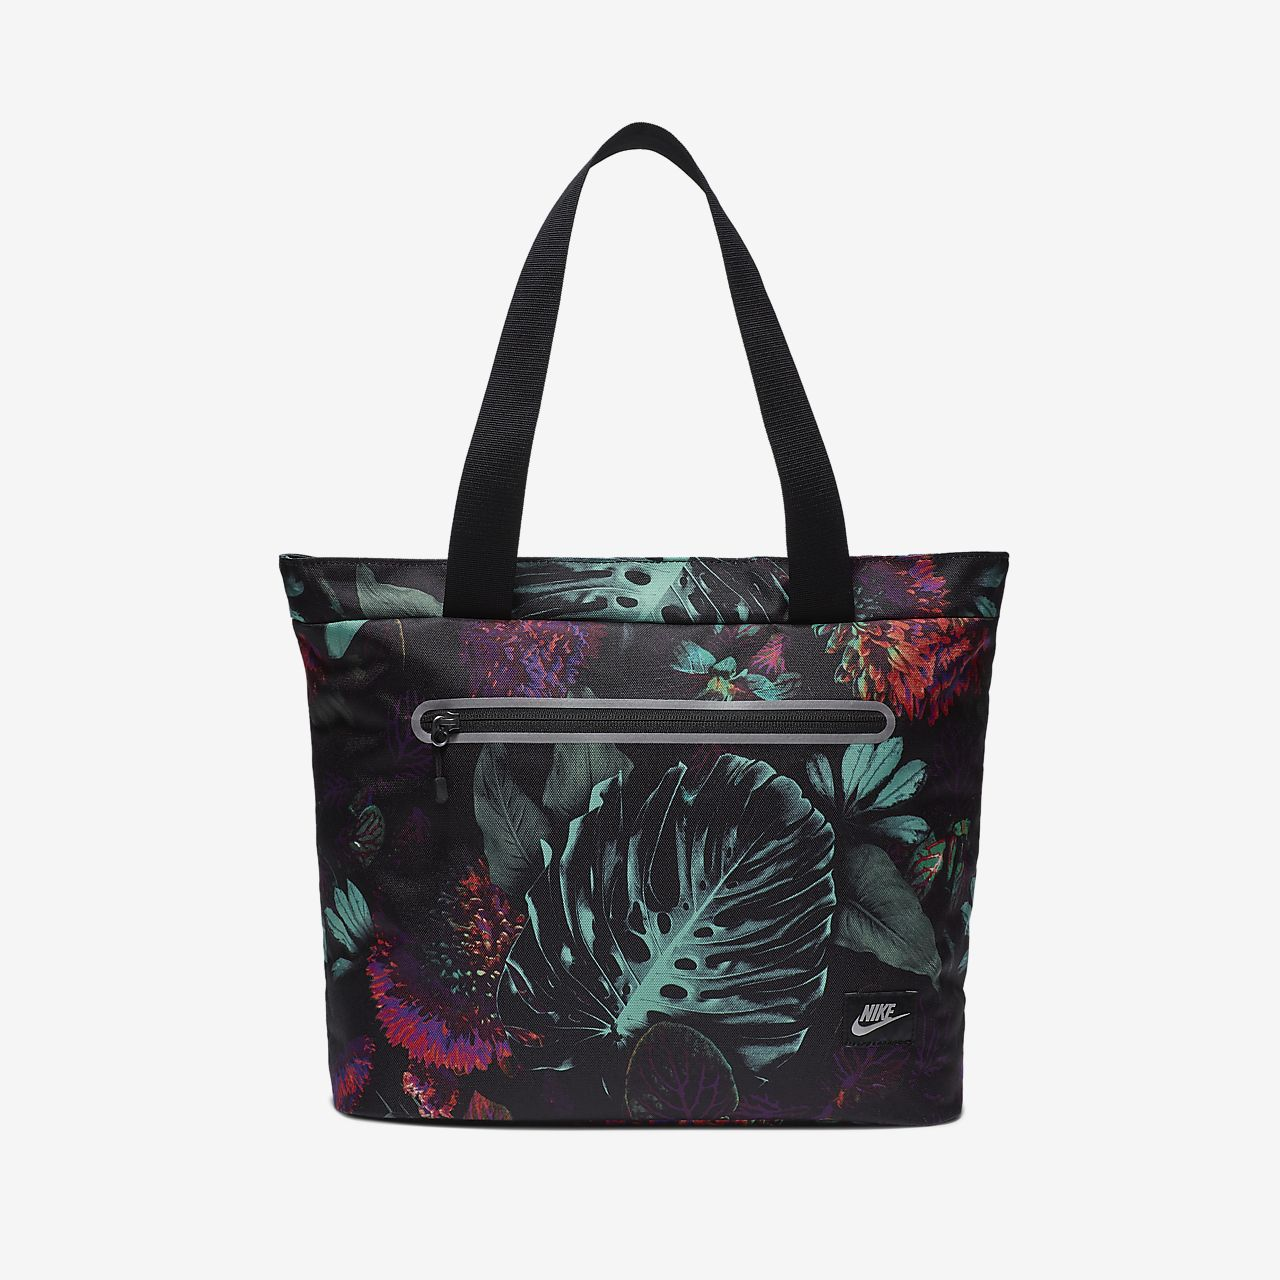 Nike Tech Printed Tote Bag